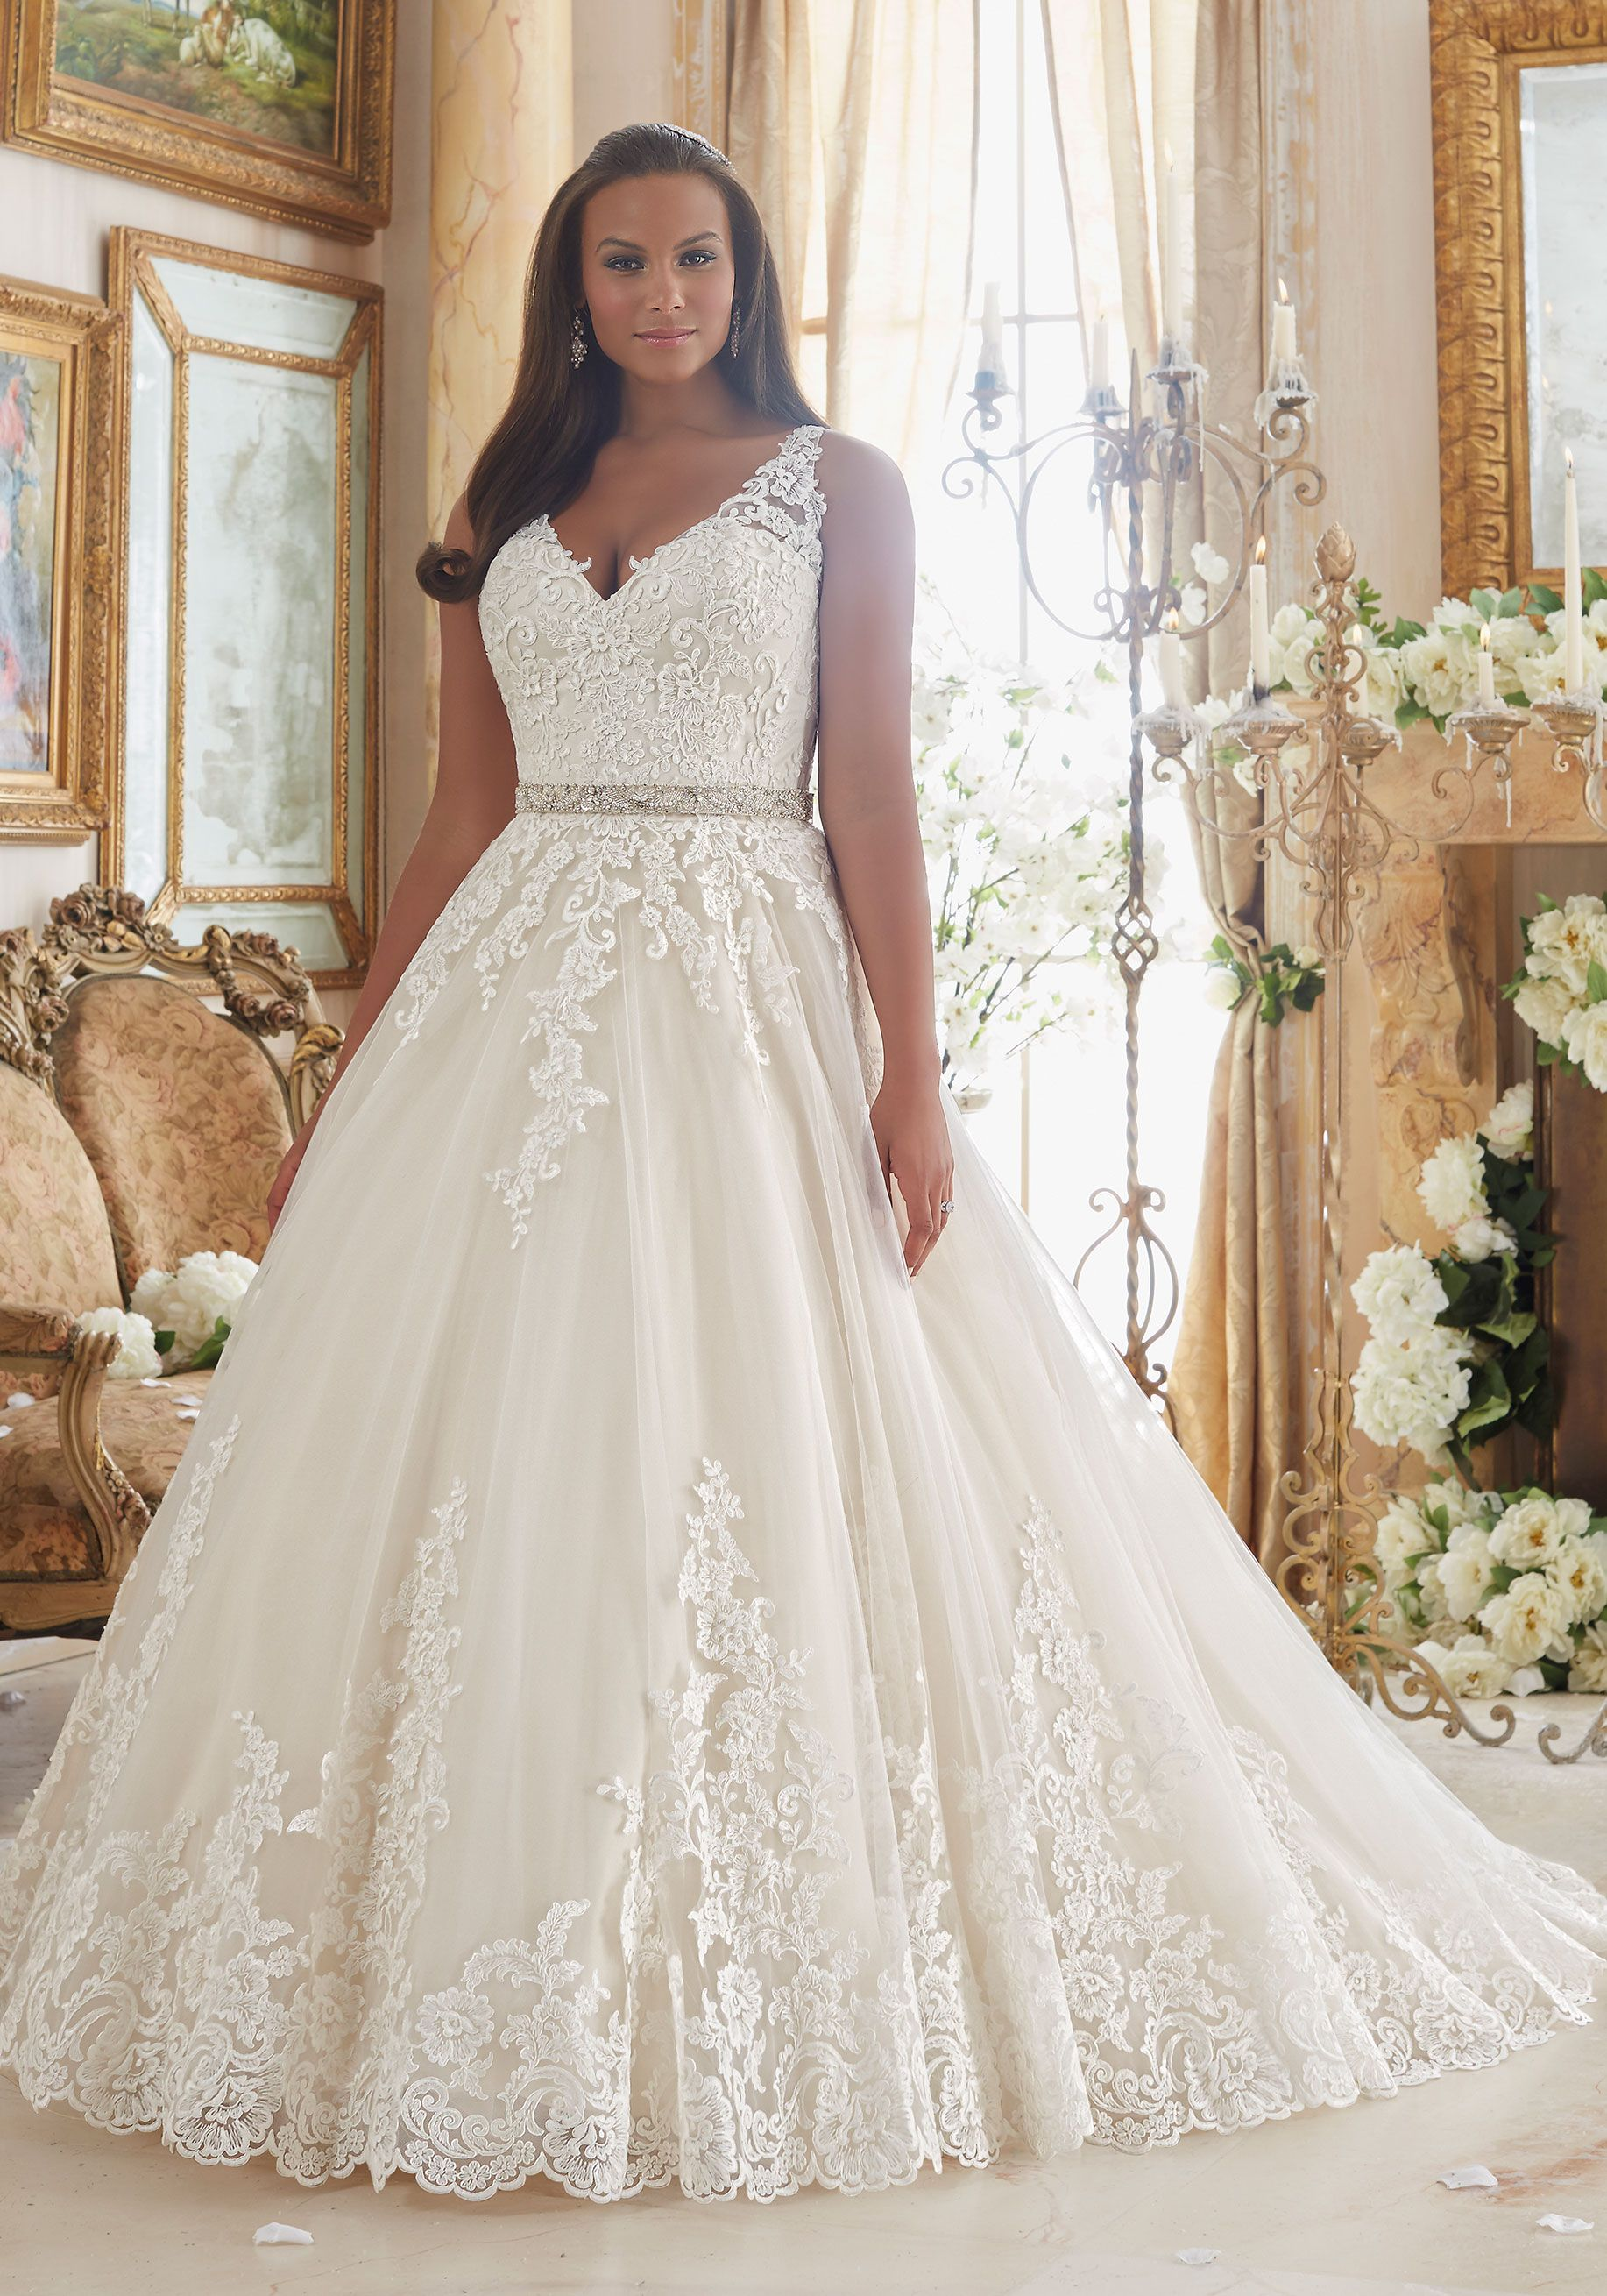 low cost wedding dresses in atlantga%0A Embroidered Lace Appliques on Tulle Ball Gown with Scalloped Hemline Plus  Size Wedding Dress Designed by